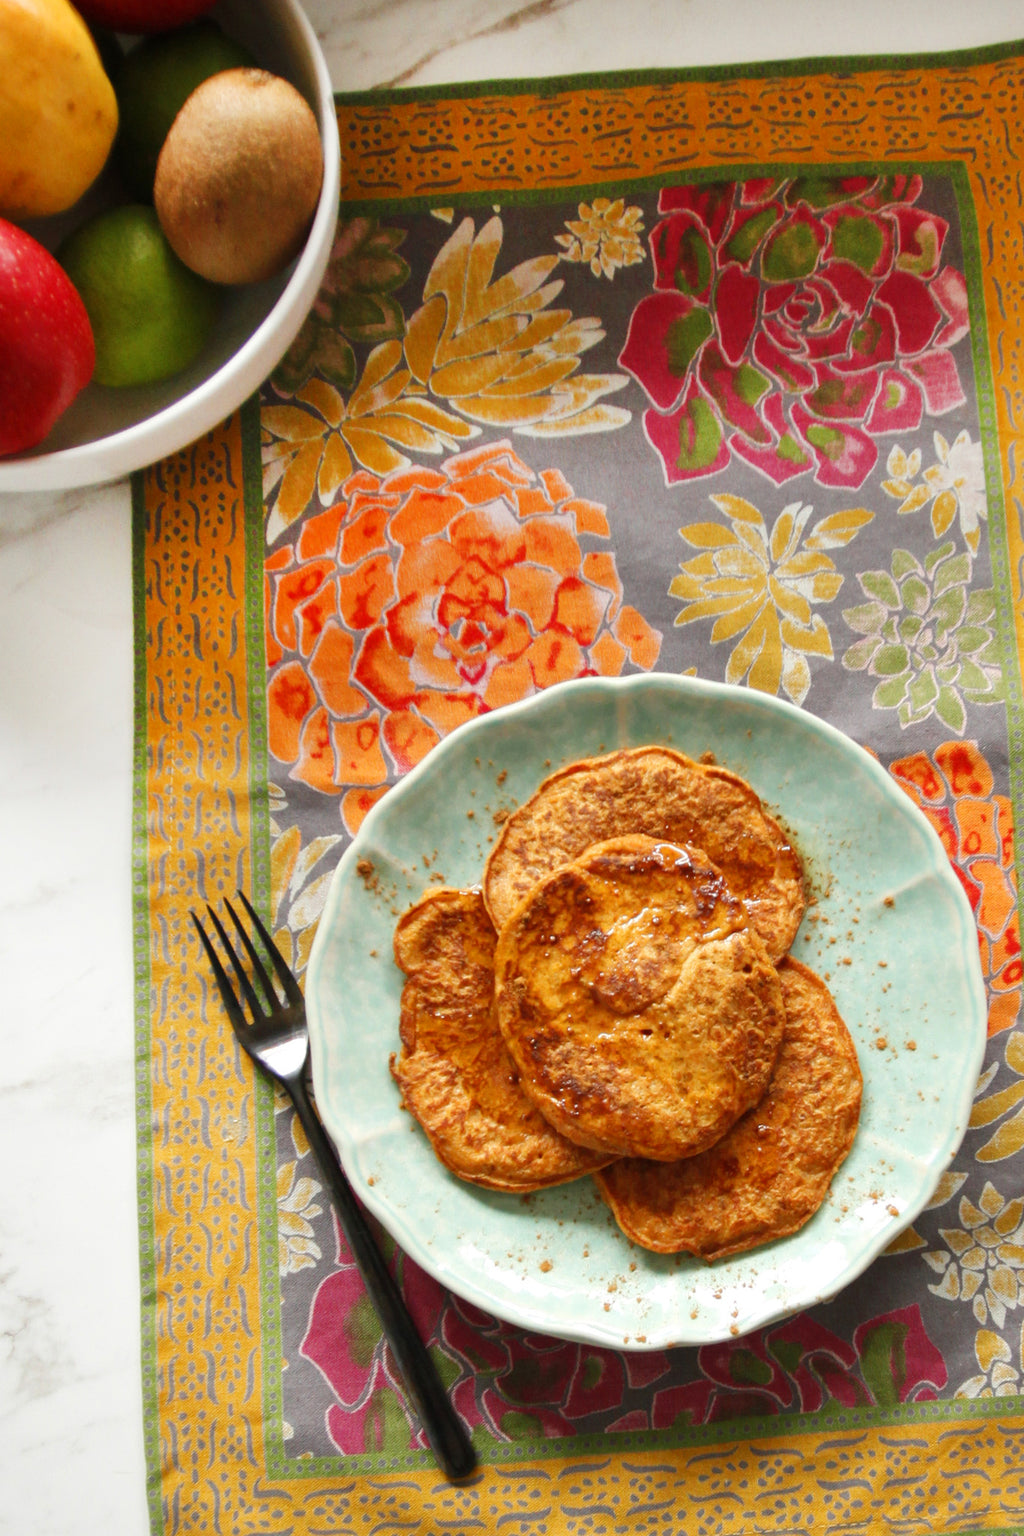 CINNAMON SWEET POTATO PANCAKES